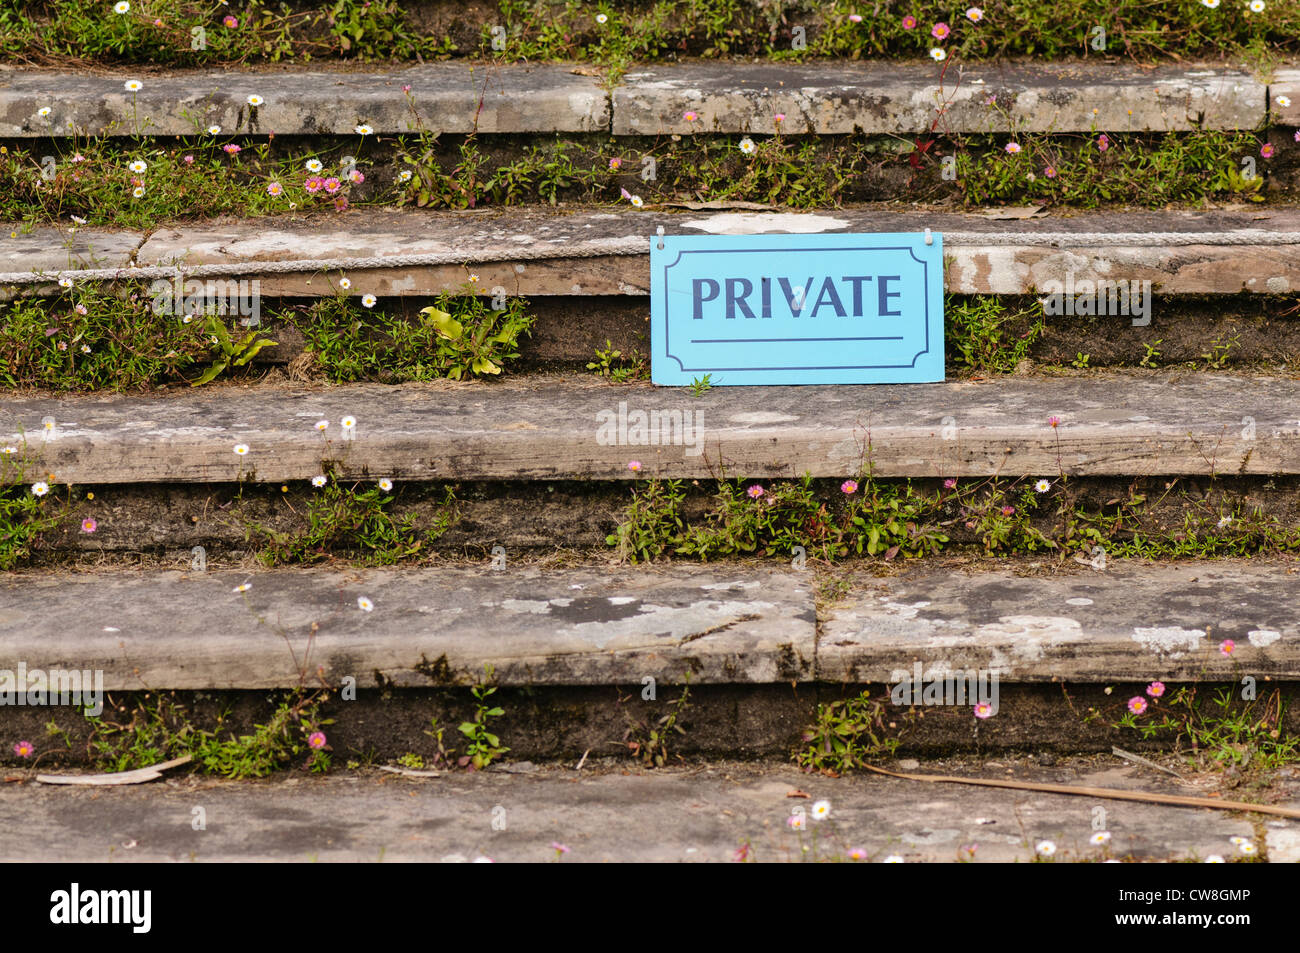 Sign saying 'private' on stone steps covered in flowers - Stock Image